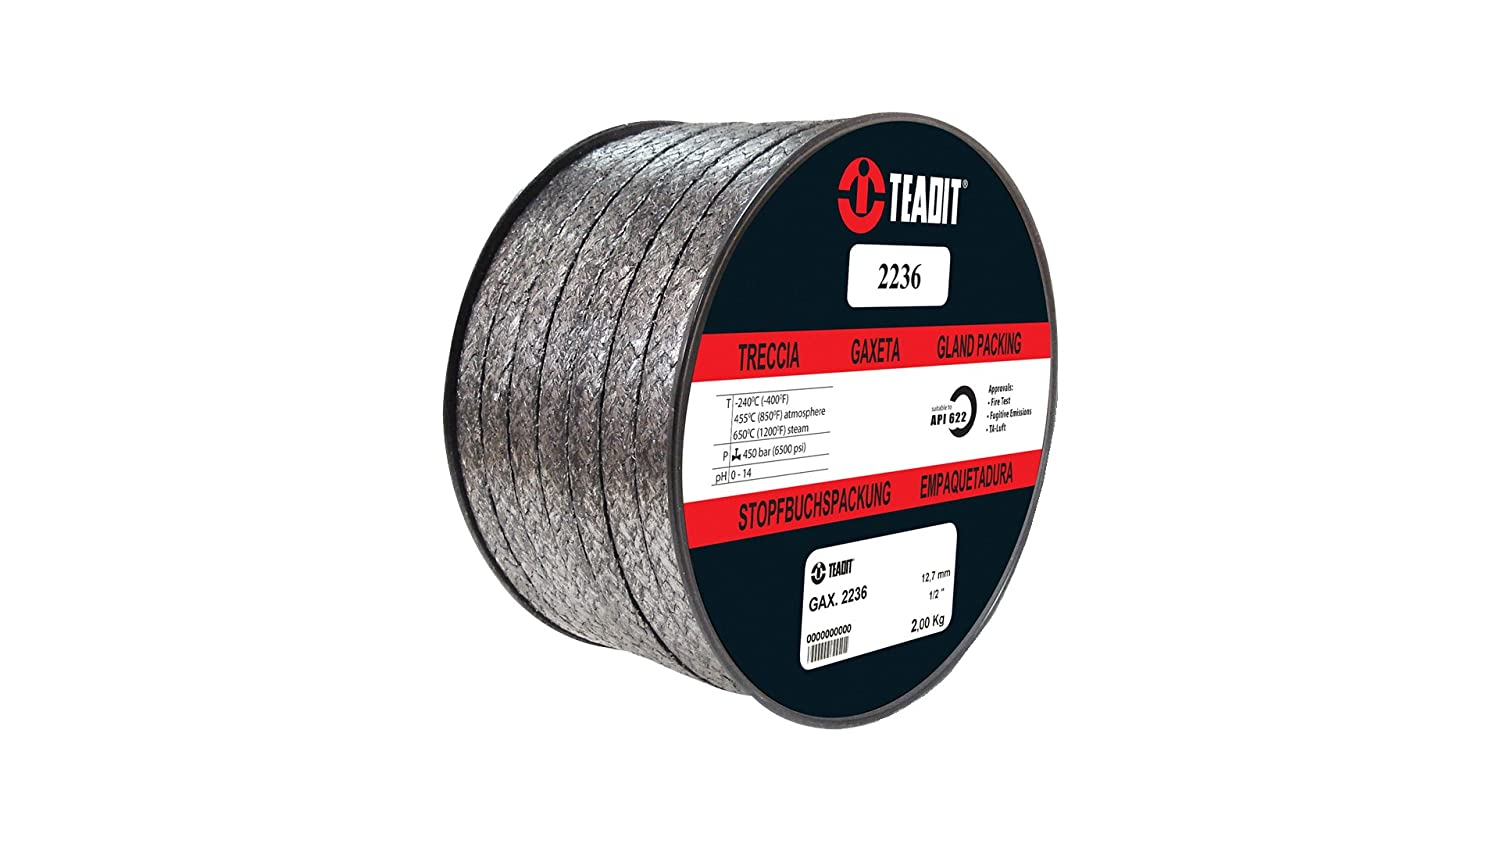 Sterling Seal and Supply (STCC) 2236.375X10 Teadit Style 2236 Graphite Foil with Inconel Wire Jacket, 3/8